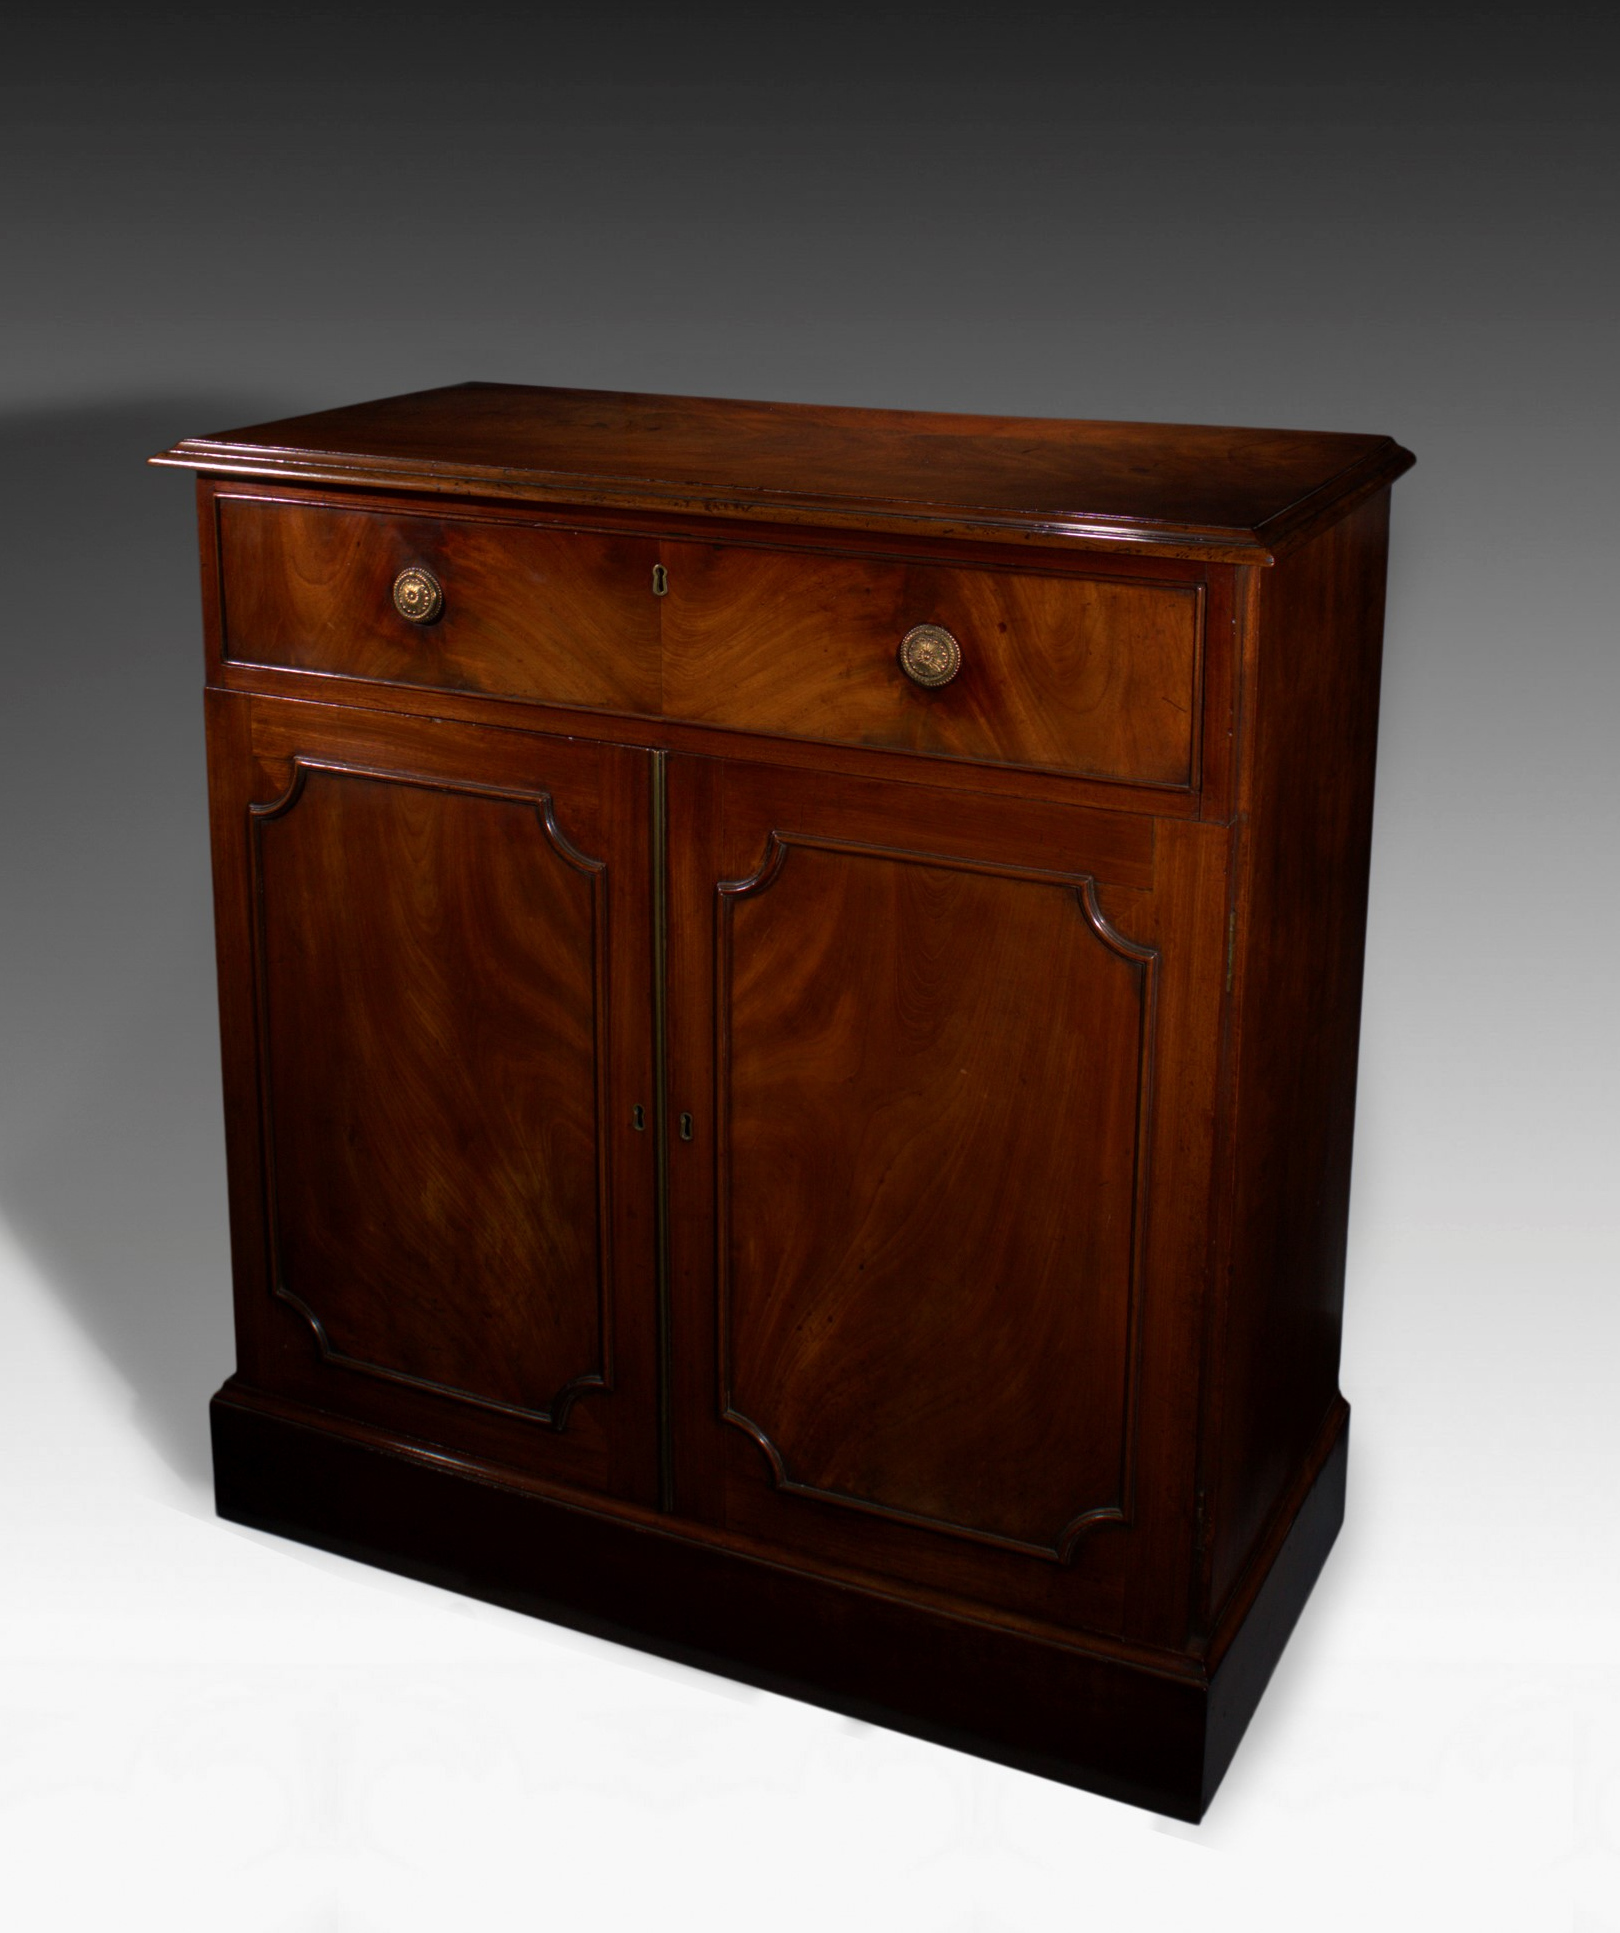 ANTIQUE GEORGE III MAHOGANY SIDE CABINET WITH CELLARET DRAWER